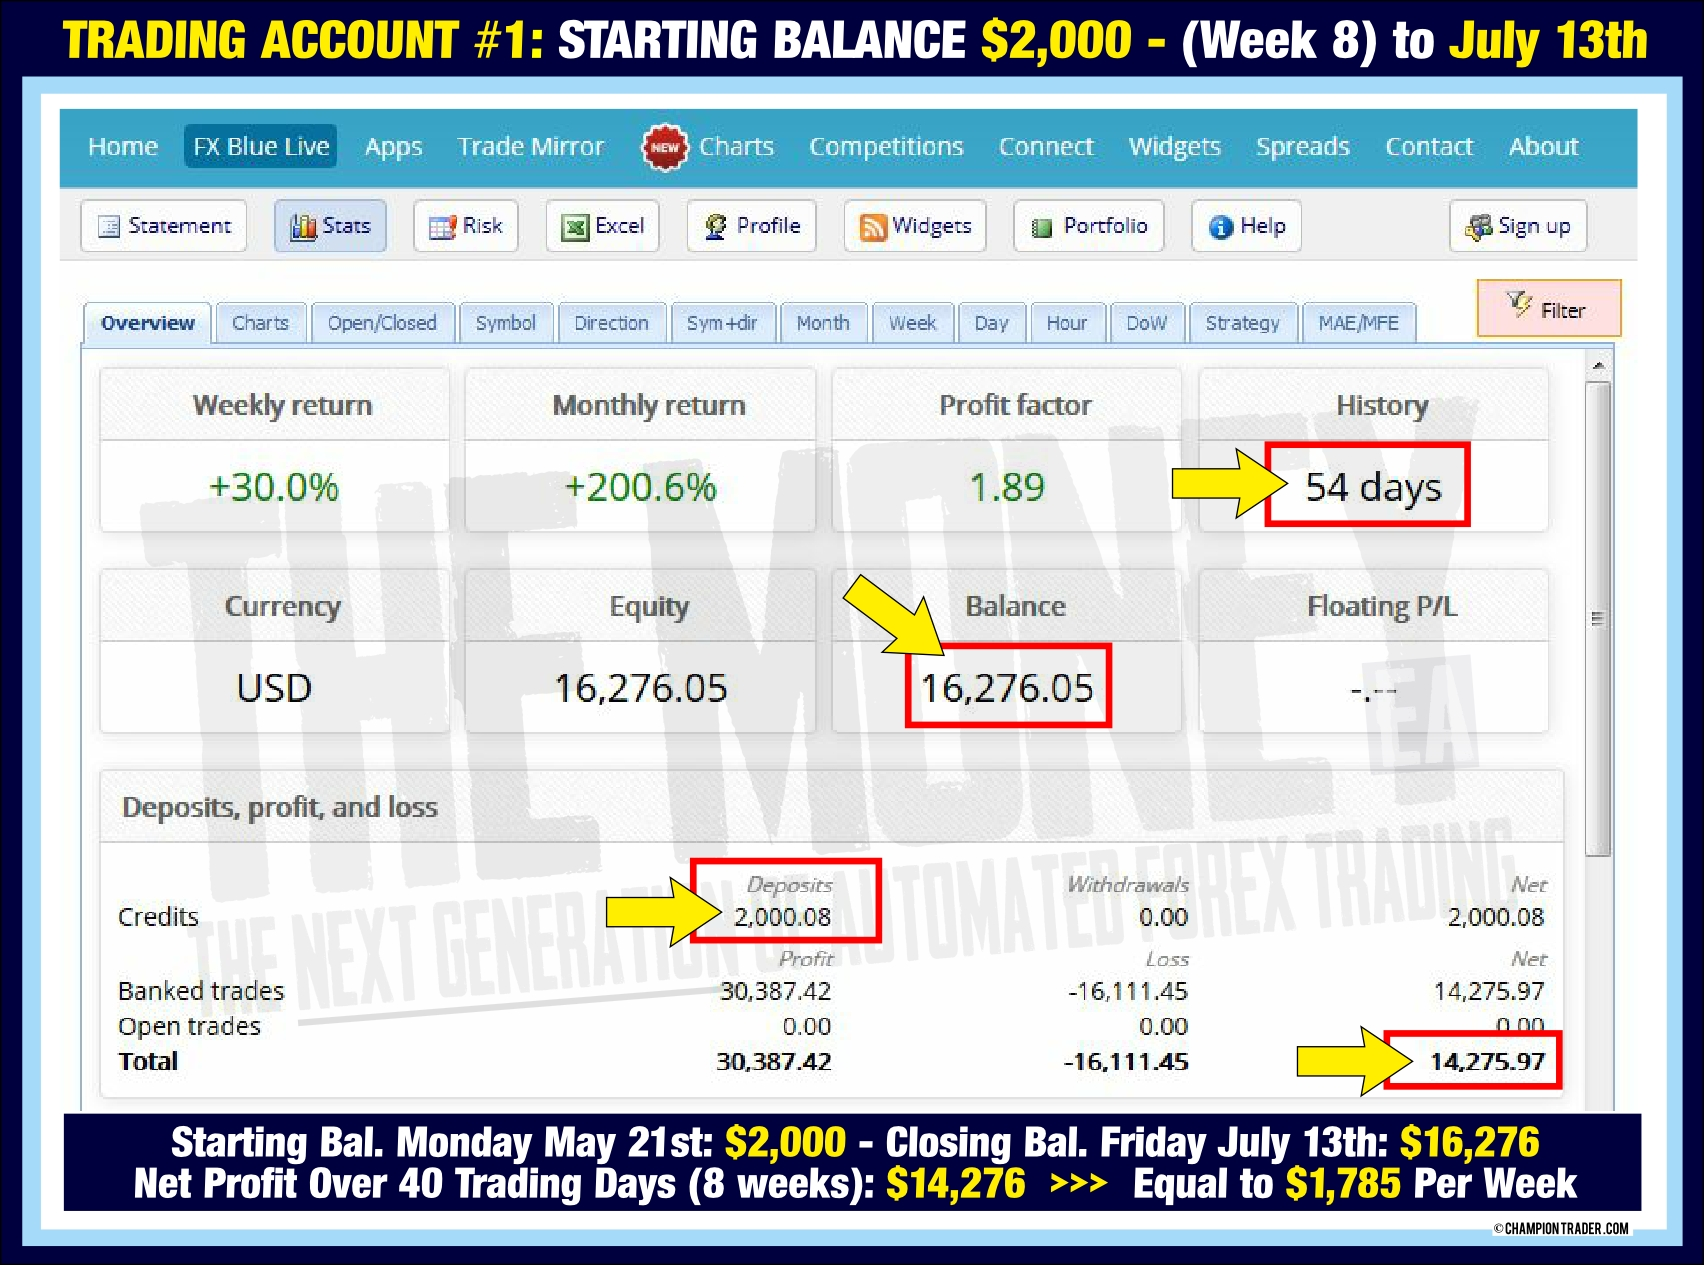 PAX to July 13th - $14276 profit after 8 weeks the money forex expert advisor